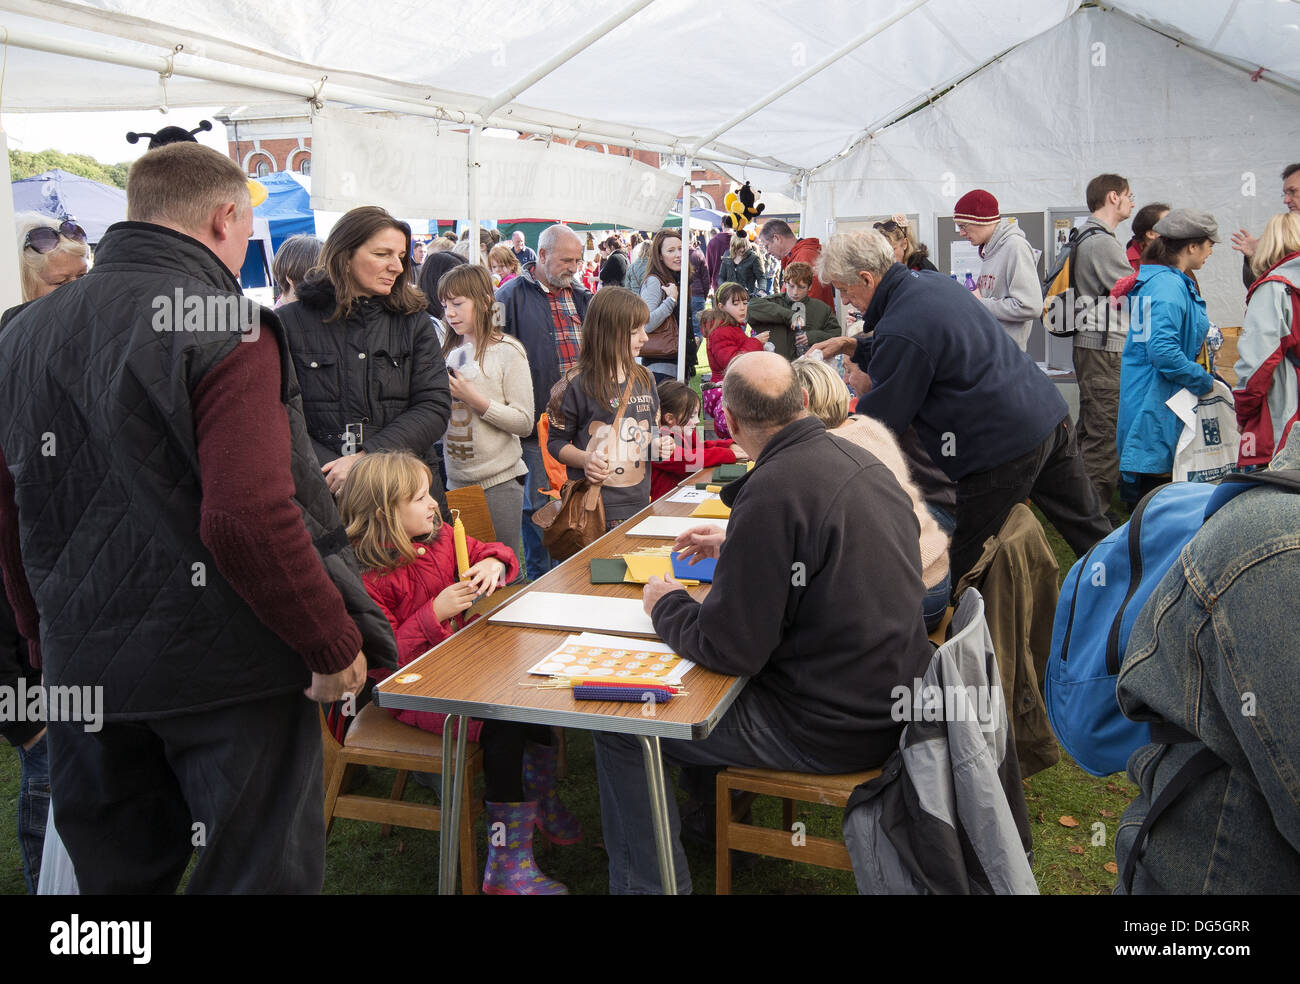 Beeswax candle making at the autumn pumpkin festival at the Royal Victoria Country Park, Netley, Southampton, Hampshire, England - Stock Image